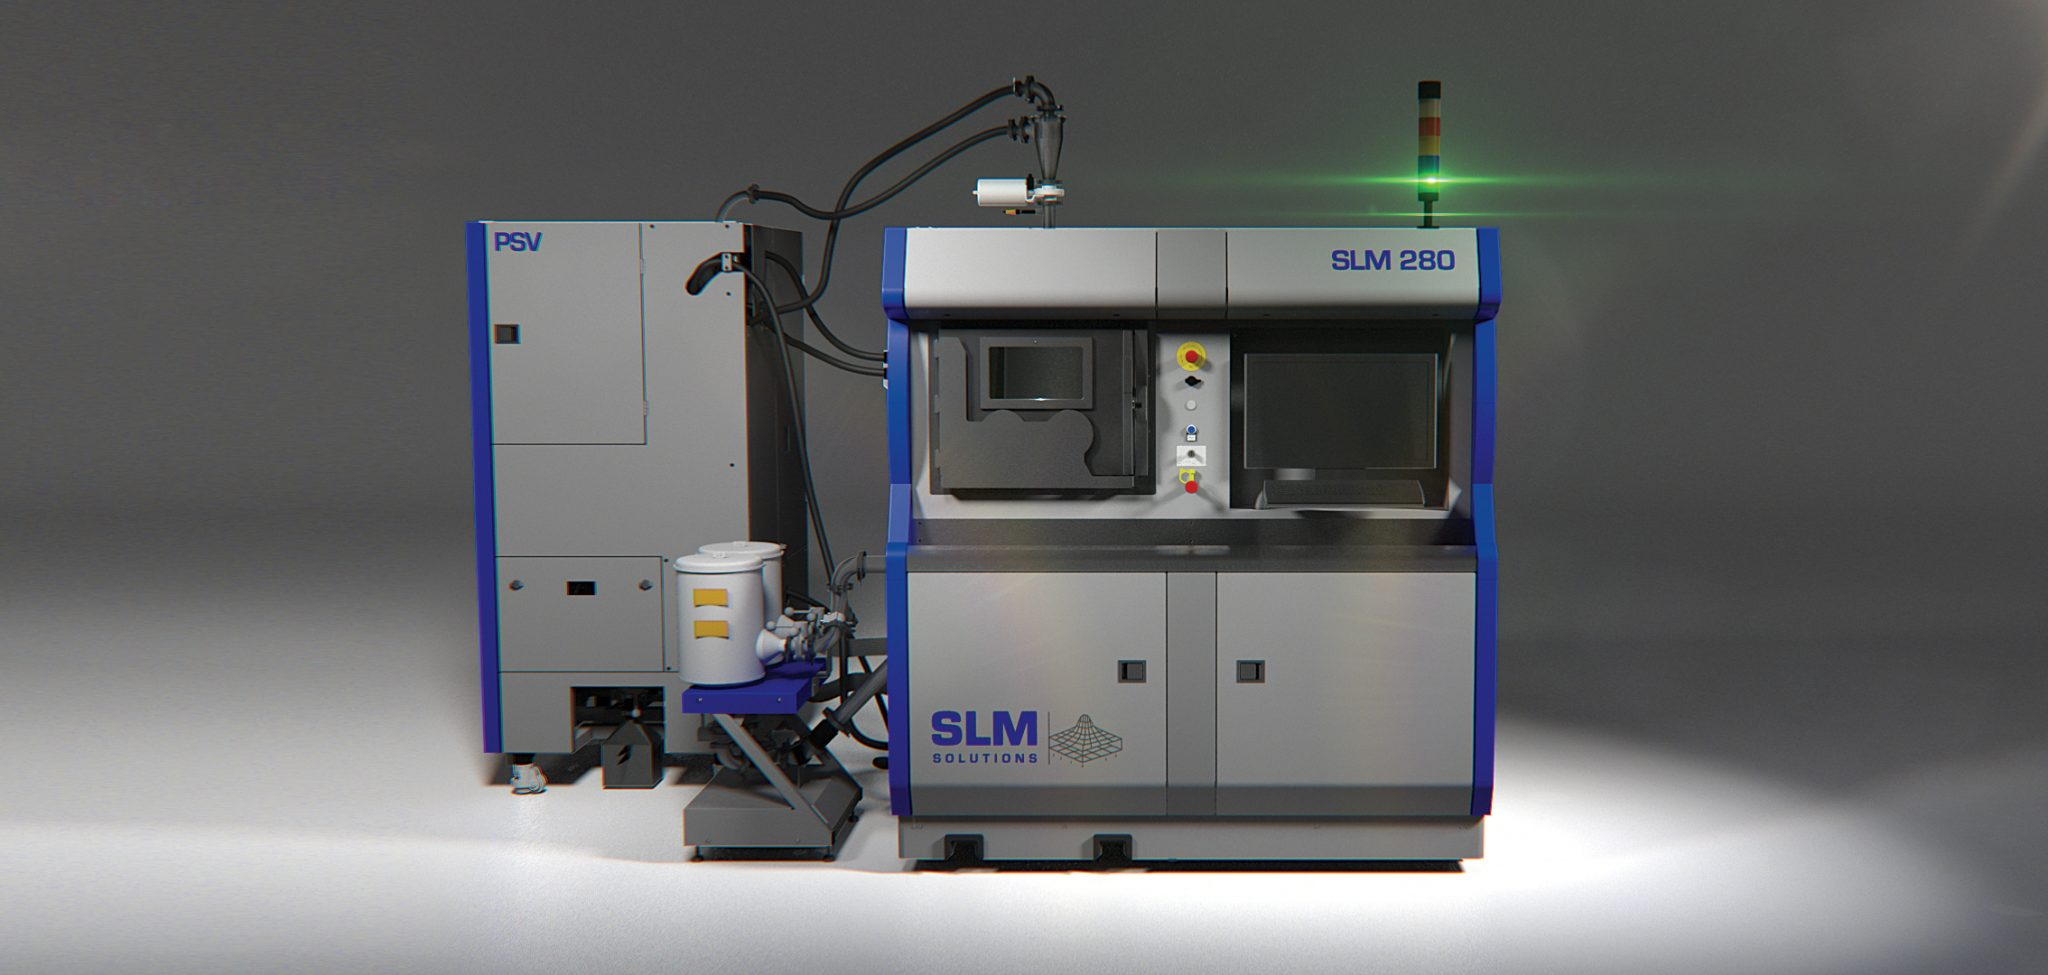 The SLM280 metal additive manufacturing system. Photo via SLM Solutions.